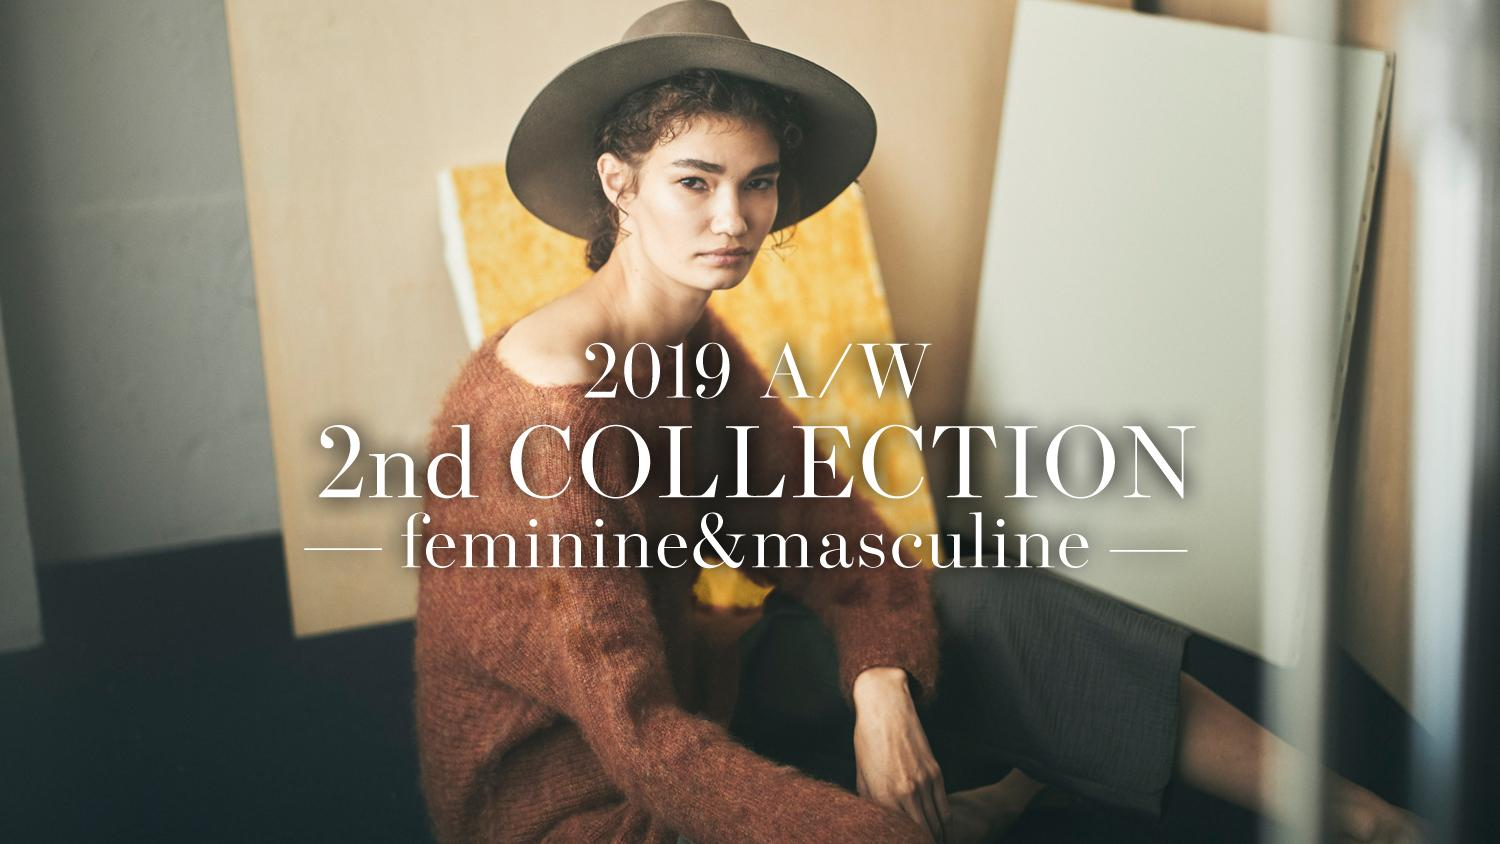 2019 A/W 2nd COLLECTION -feminine&masculine-